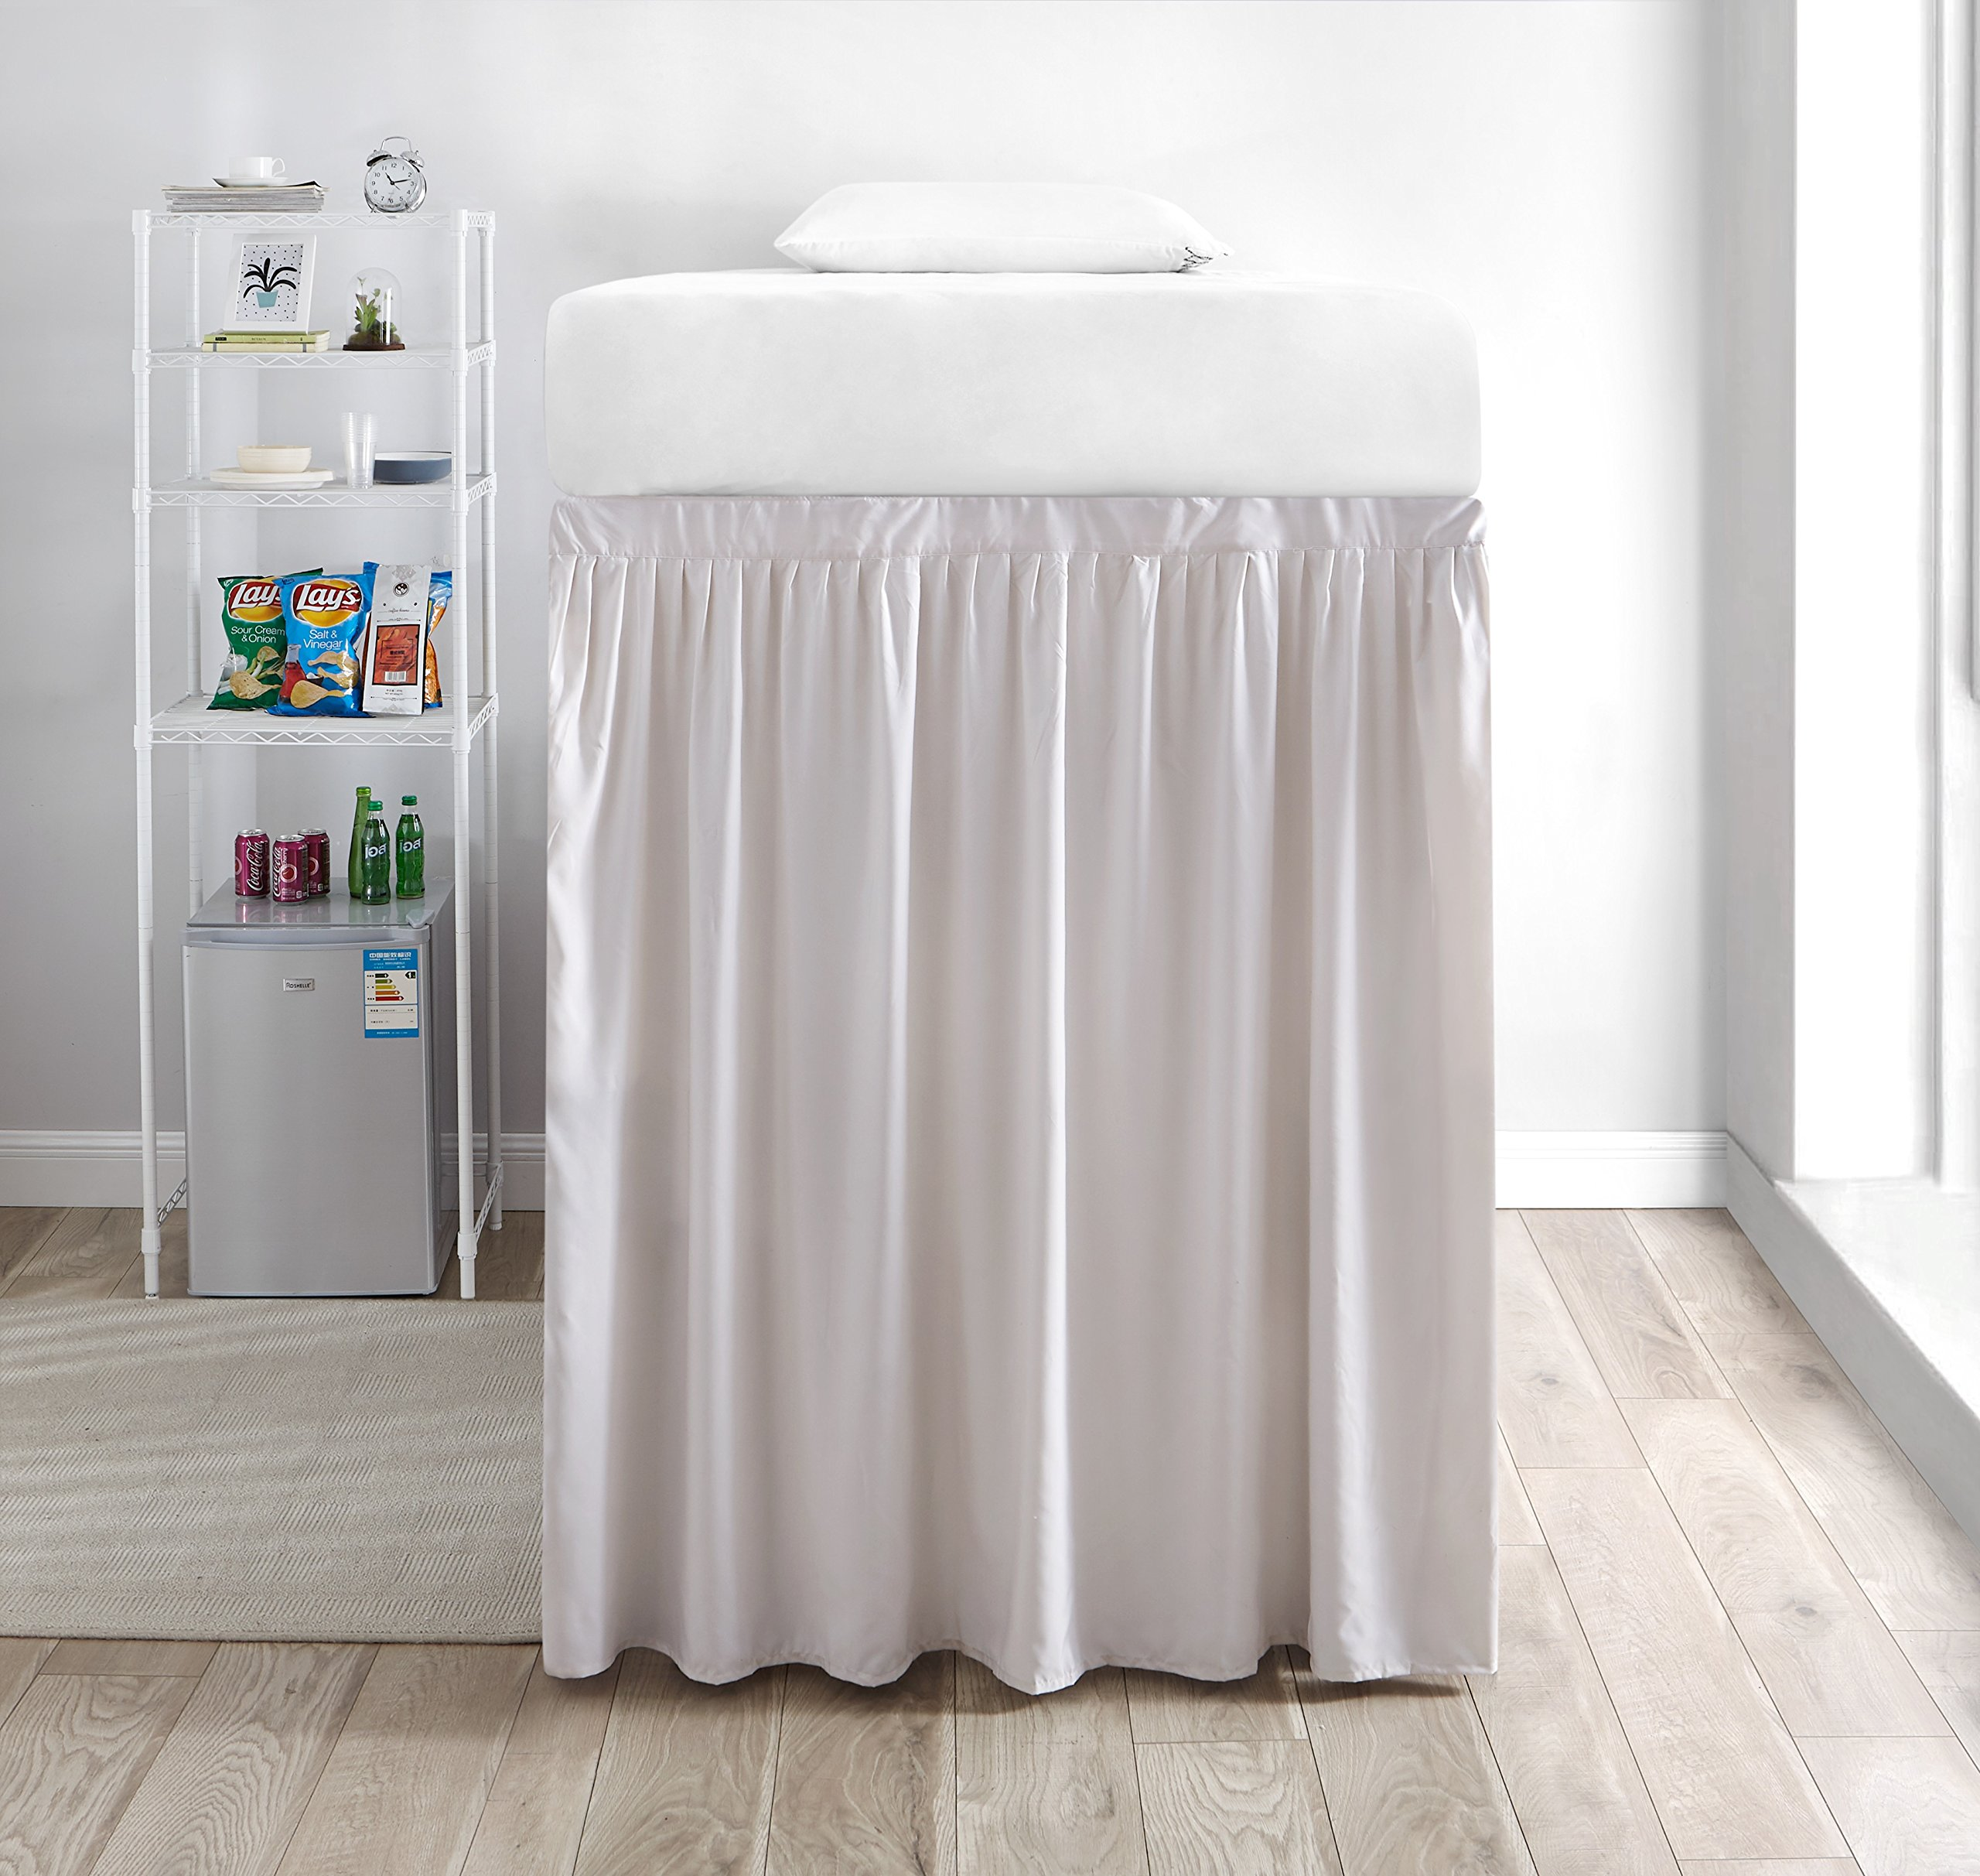 Extended Dorm Sized Bed Skirt Panel with Ties (1 Panel) - Jet Stream (For raised or lofted beds)